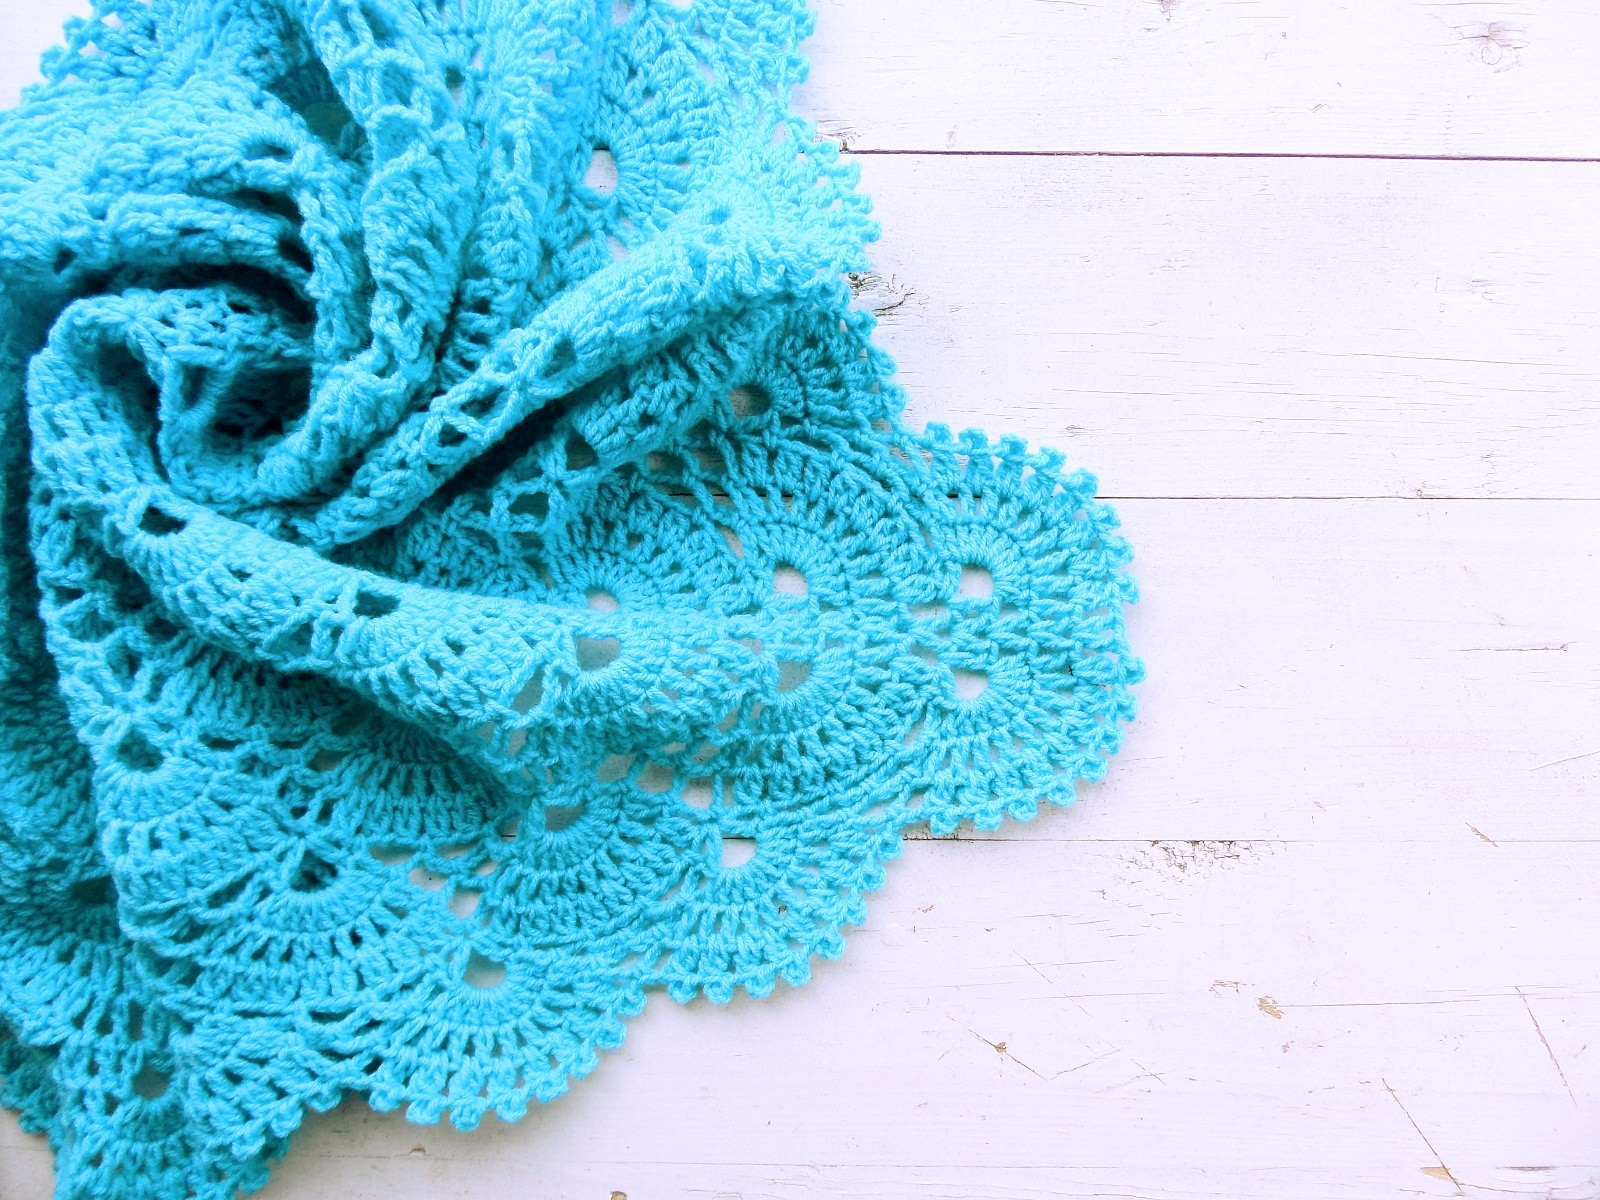 Knitted baby blanket turquoise - PLED 295